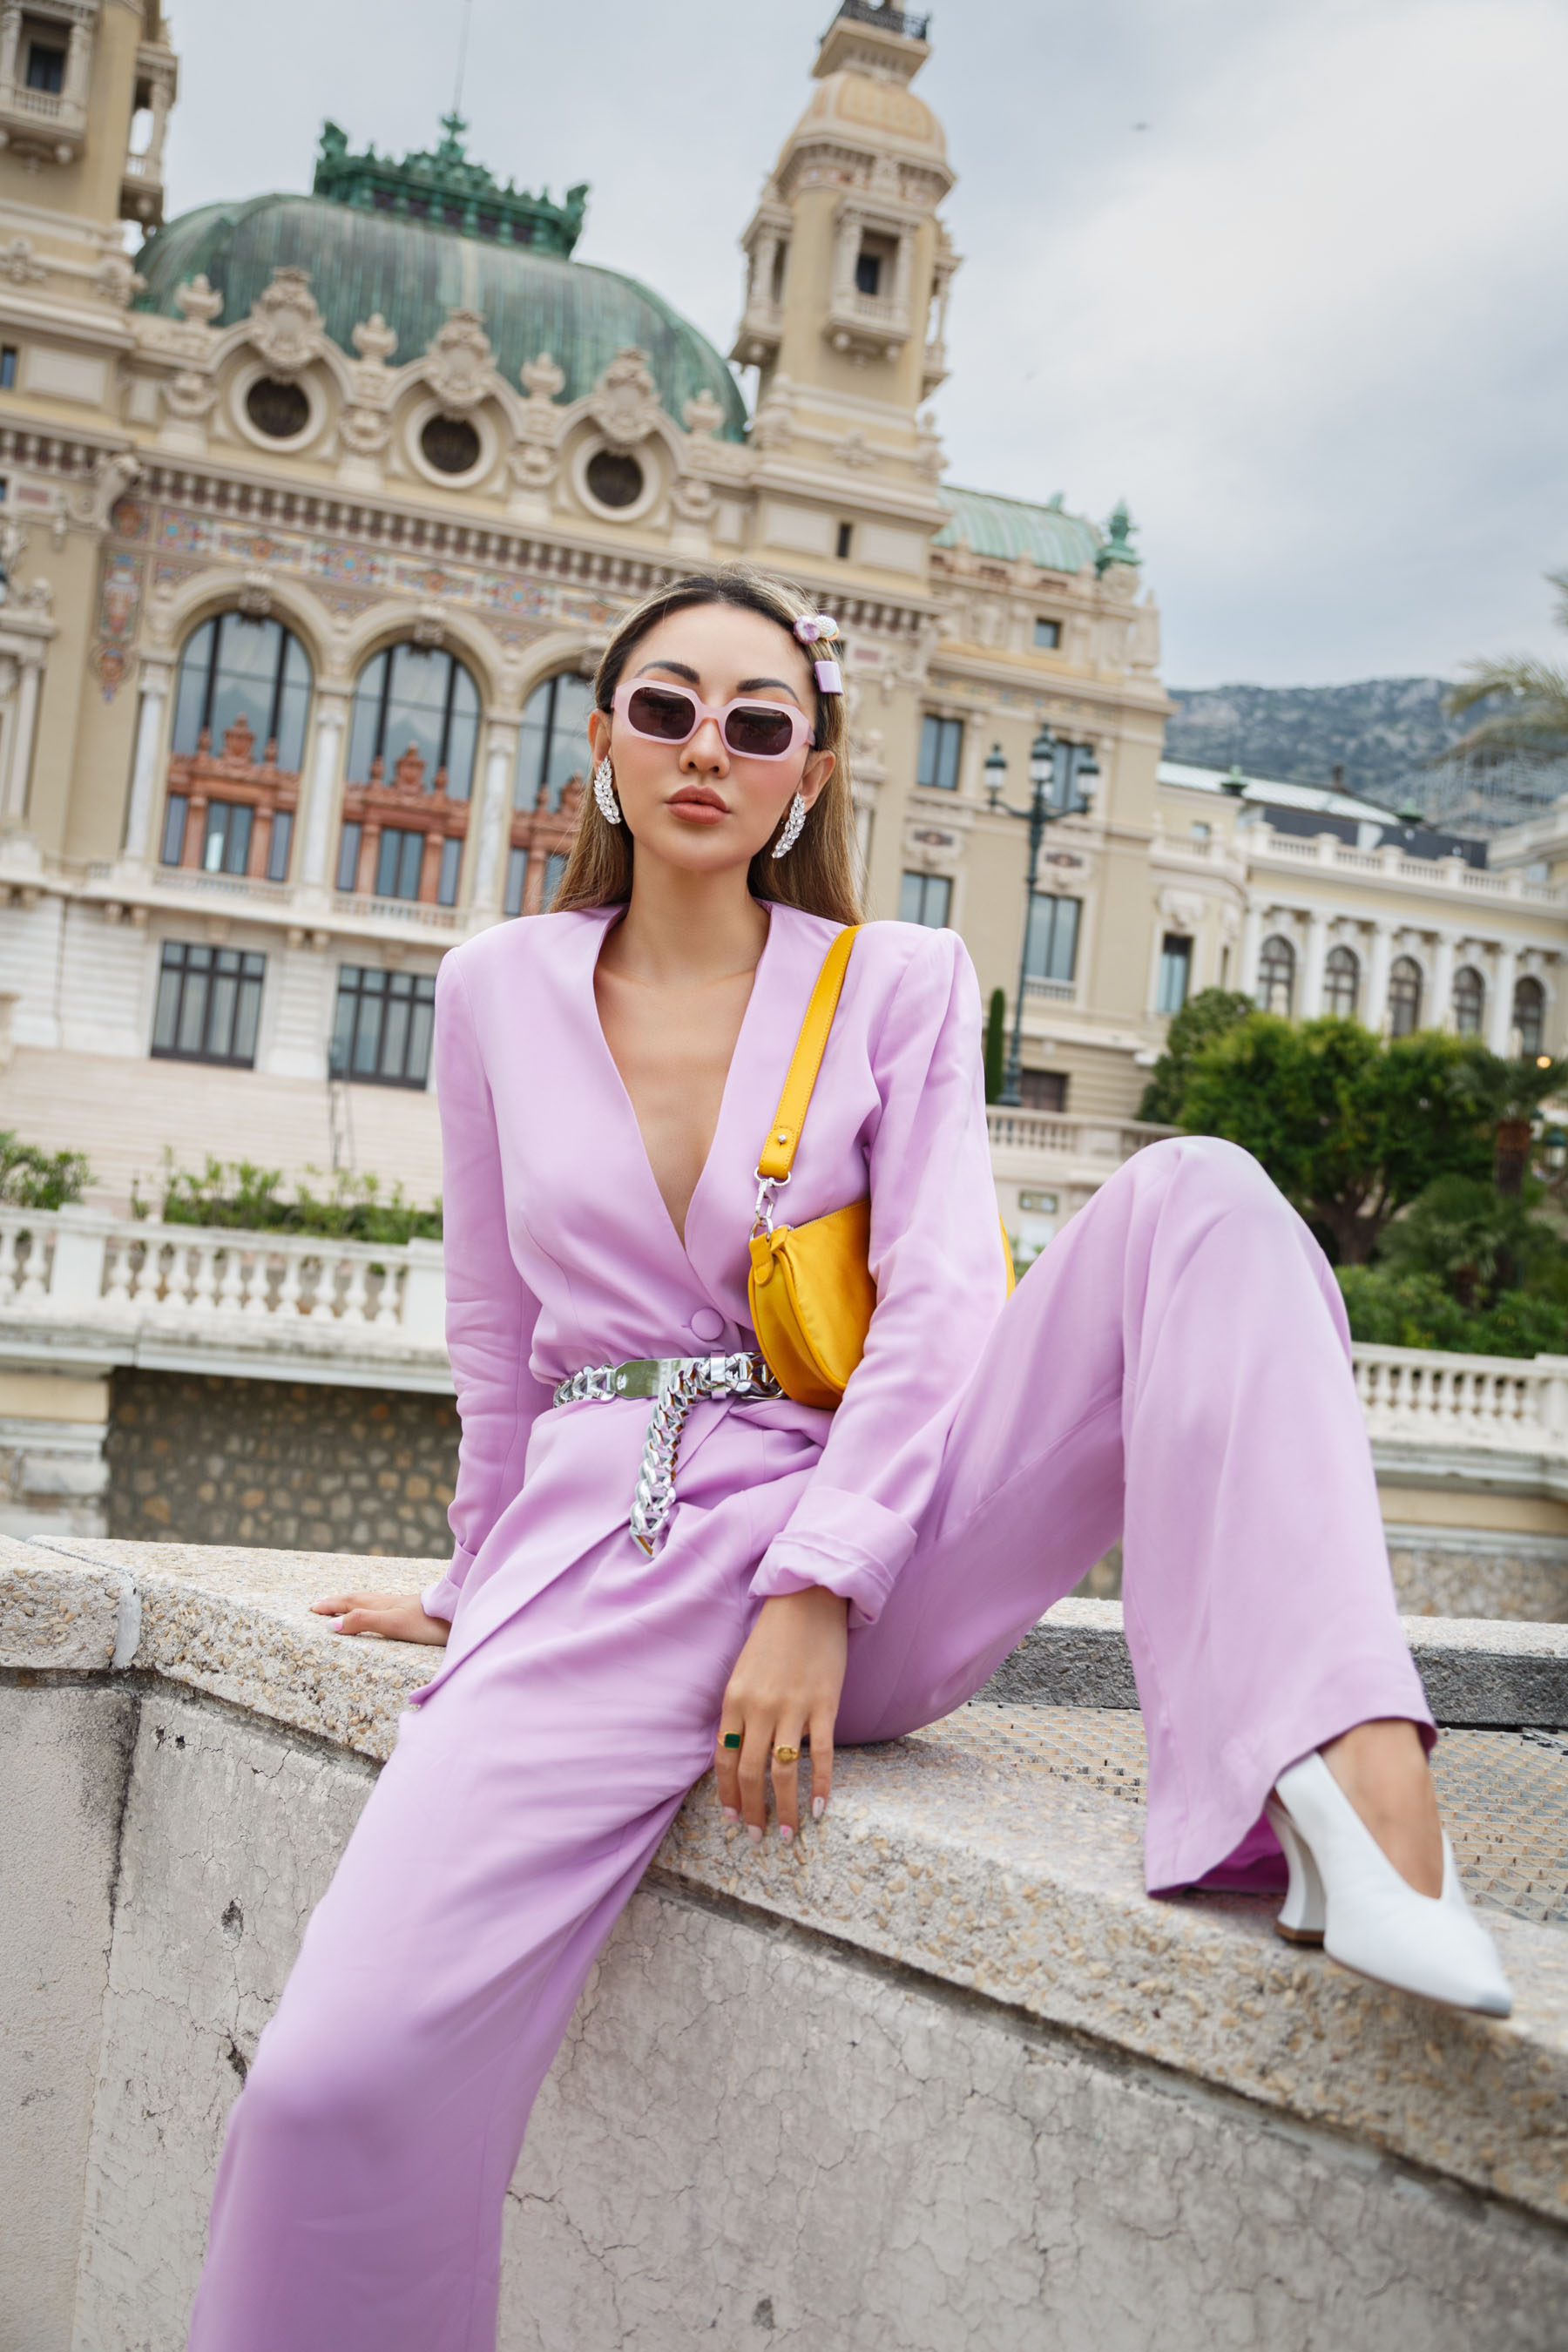 resume tools and tips, lavender suit, power suit trend // Notjessfashion.com